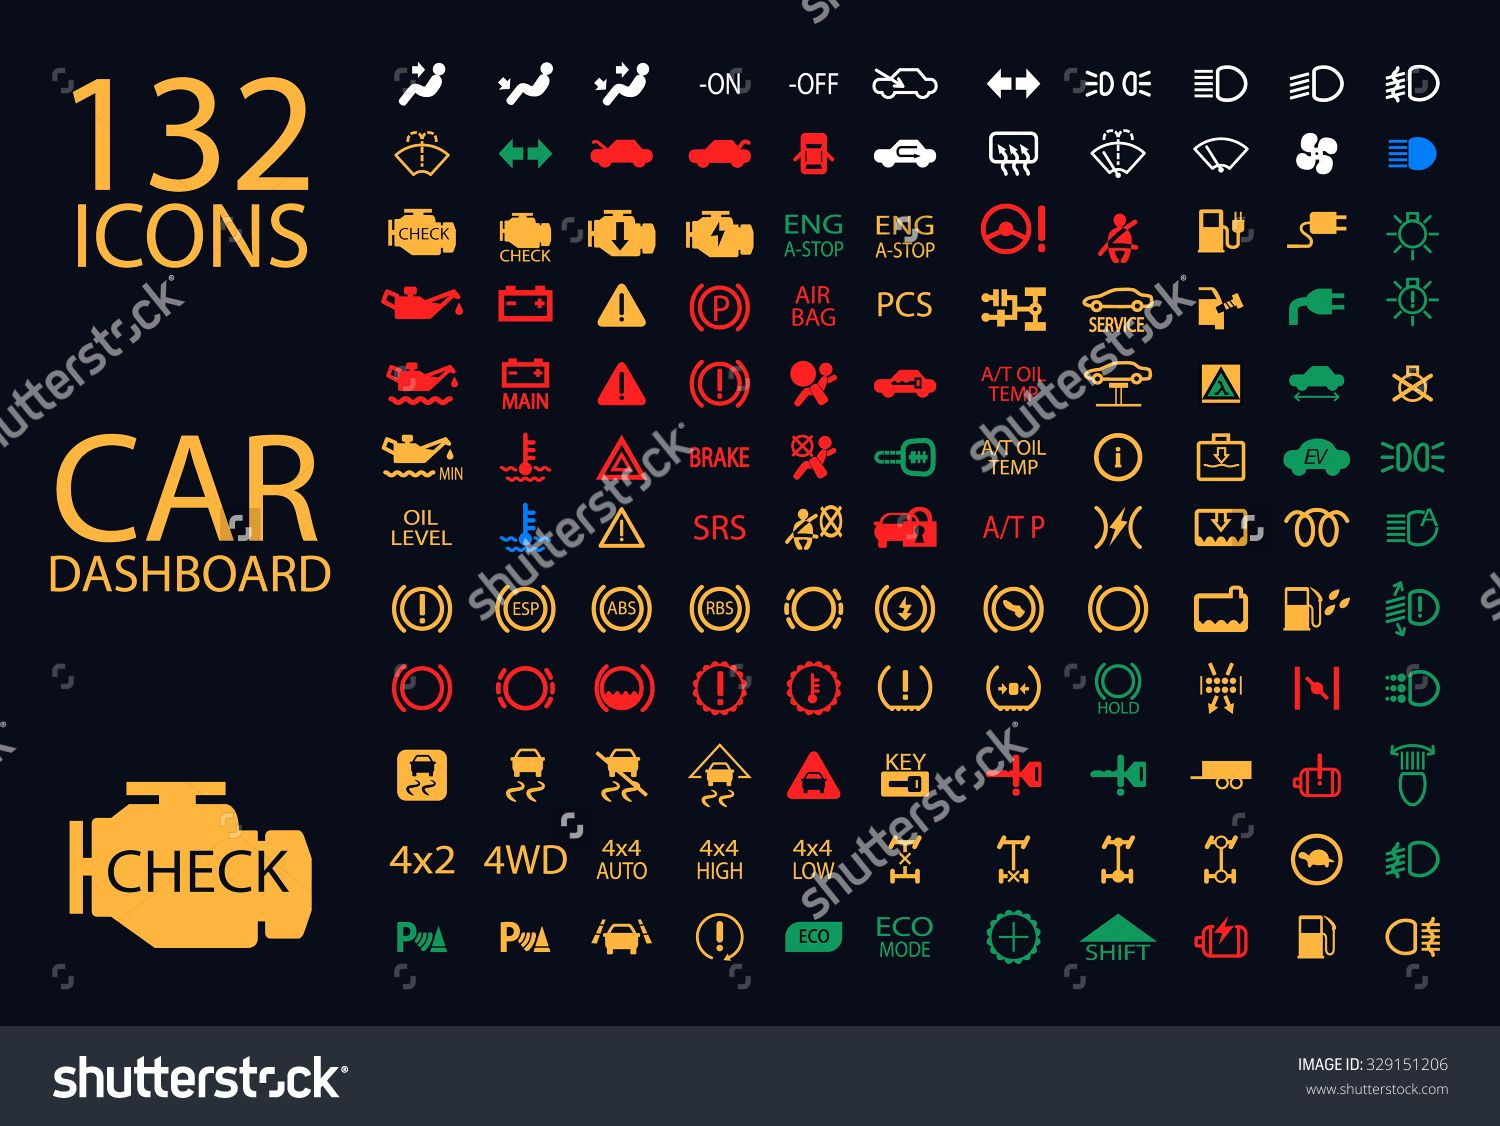 Warning Light Stock Images RoyaltyFree Images Vectors Girl Talks - Car sign on dashboard